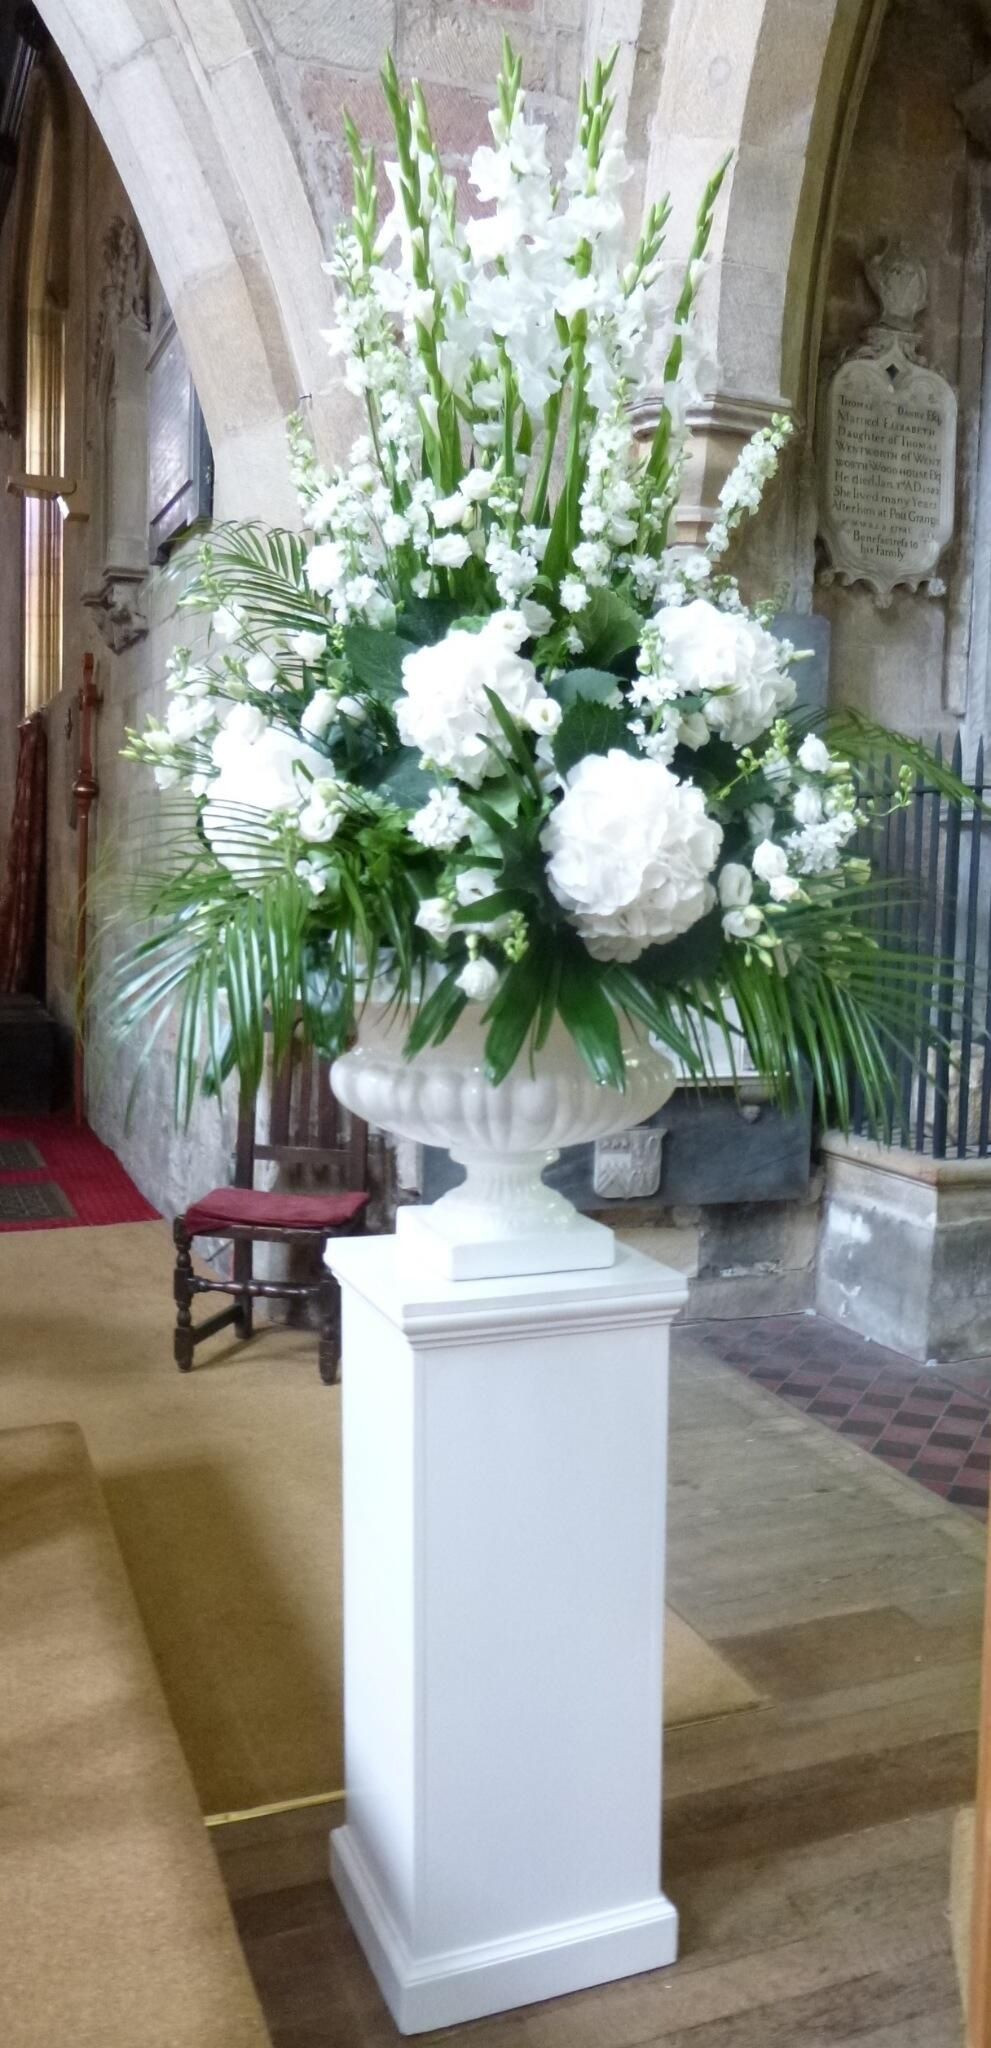 roseville vase price guide of pics of pedestal flower vase vases artificial plants collection throughout pedestal flower vase stock just inside this vast church two magnificently traditional pedestals of pics of